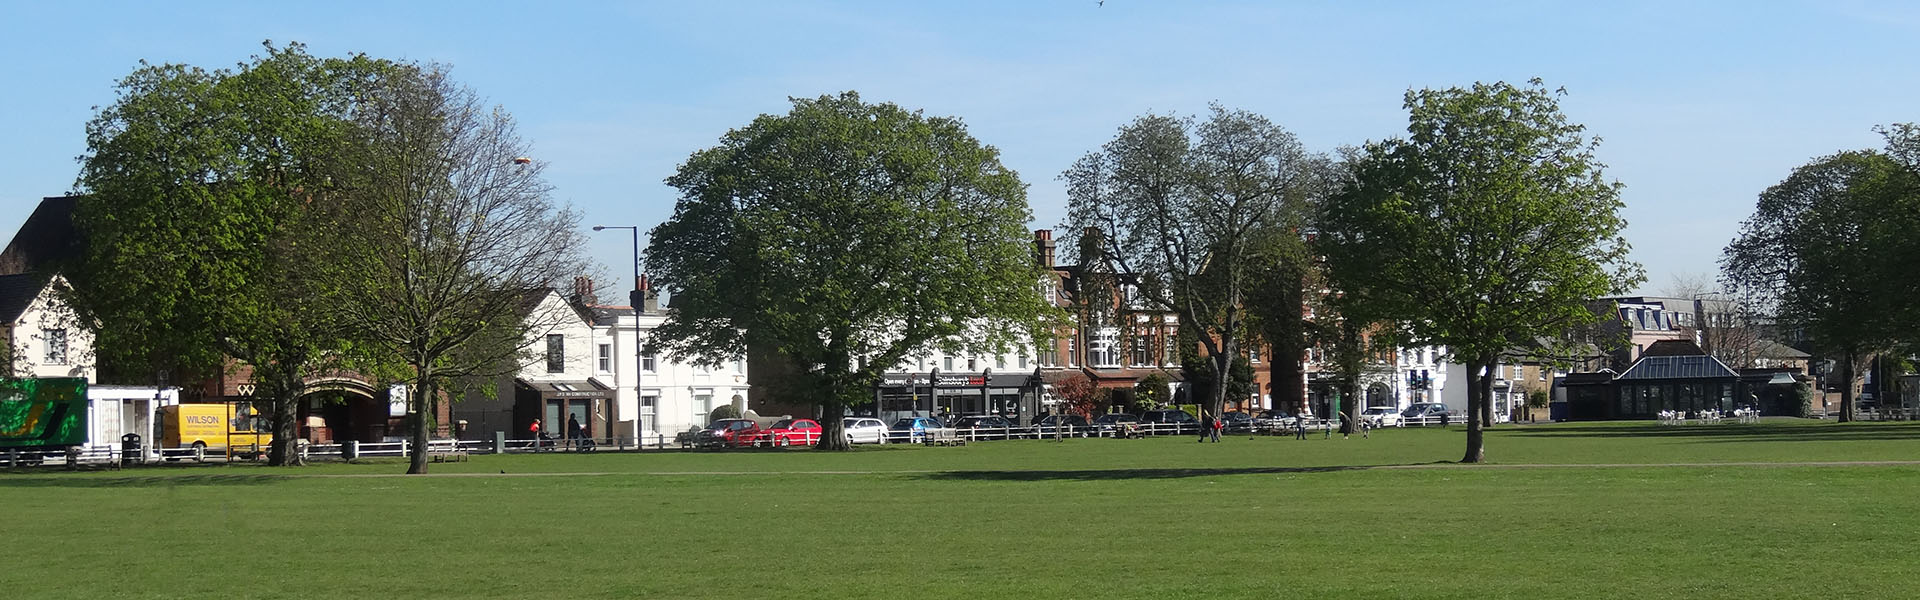 twickgreen-slider04